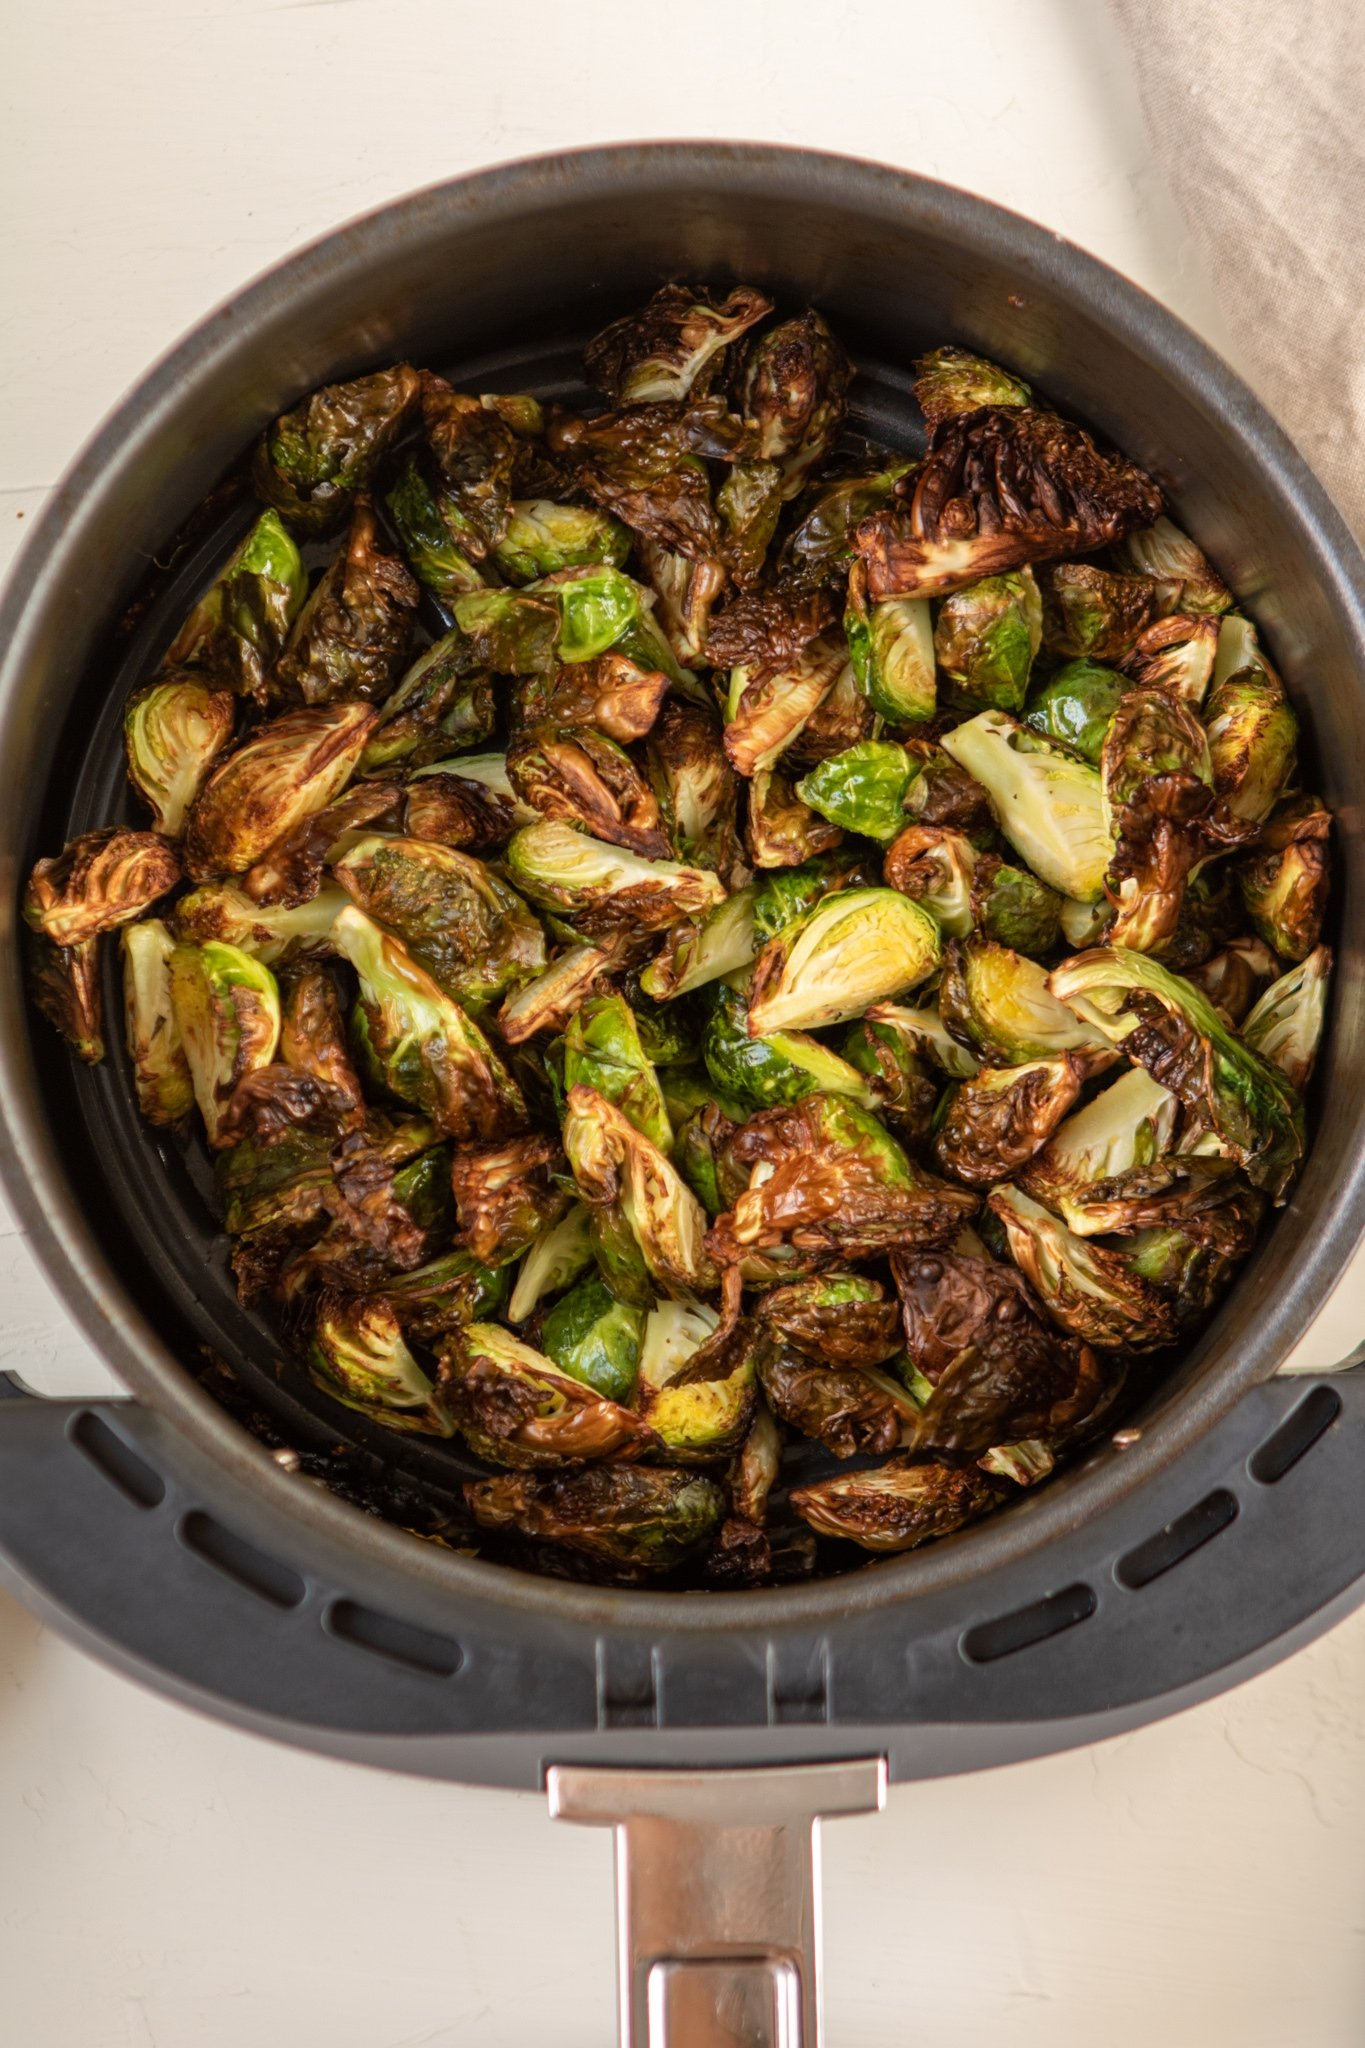 Brussel sprouts fried in the air fryer